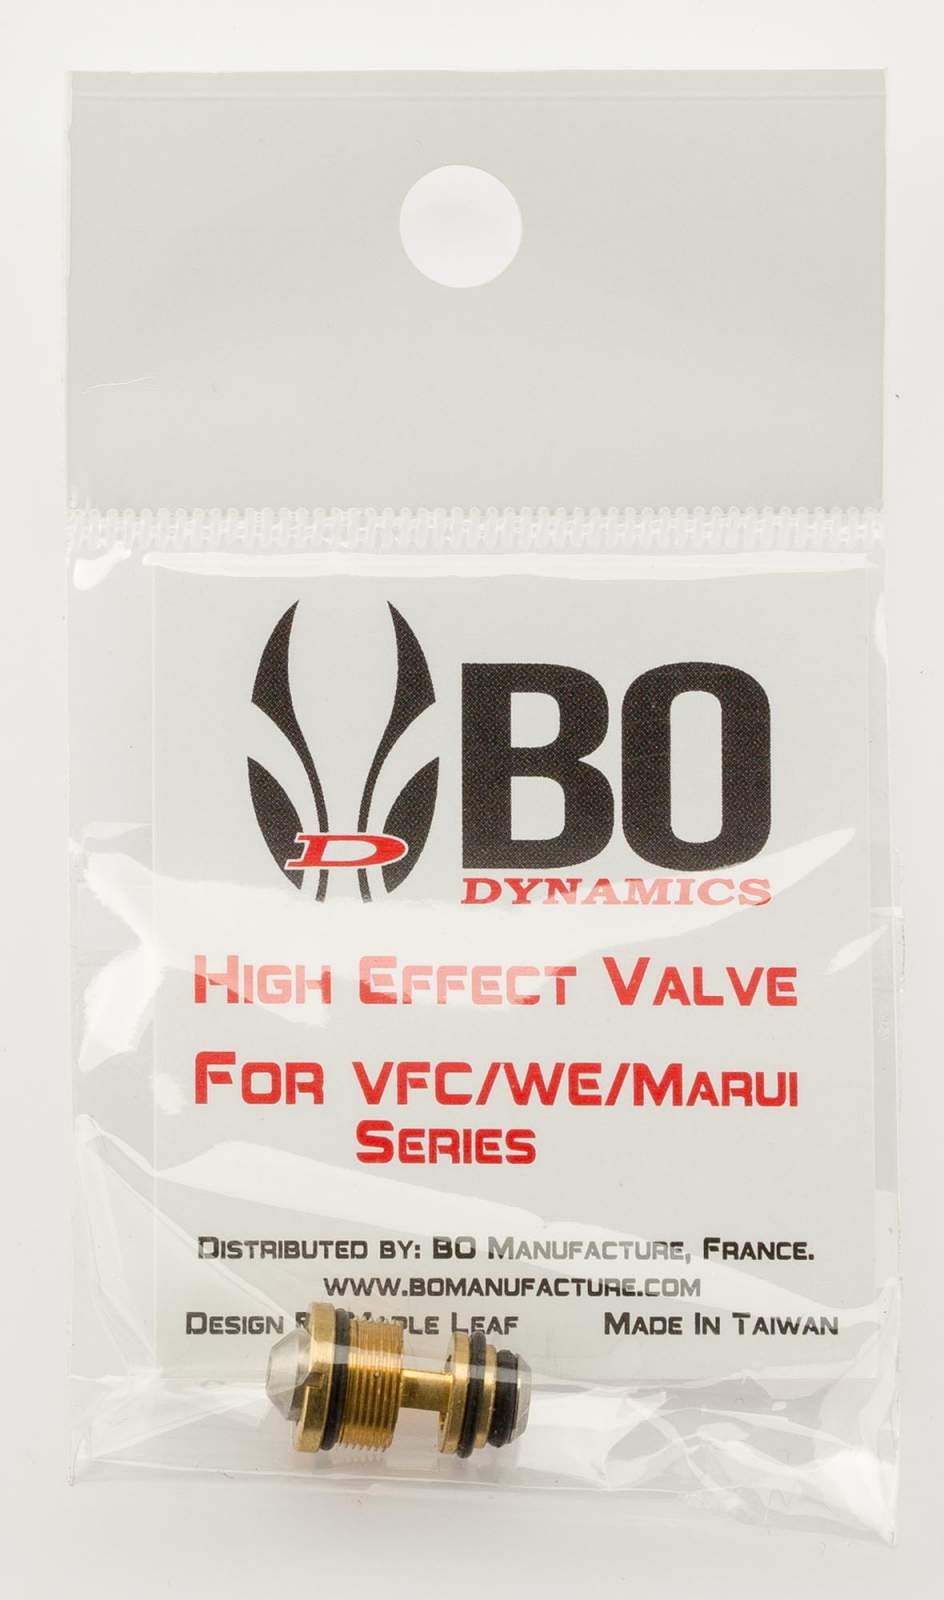 Photo BO HIGH EFFECTIVE VALVE FOR STARK ARMS GBB PISTOLS